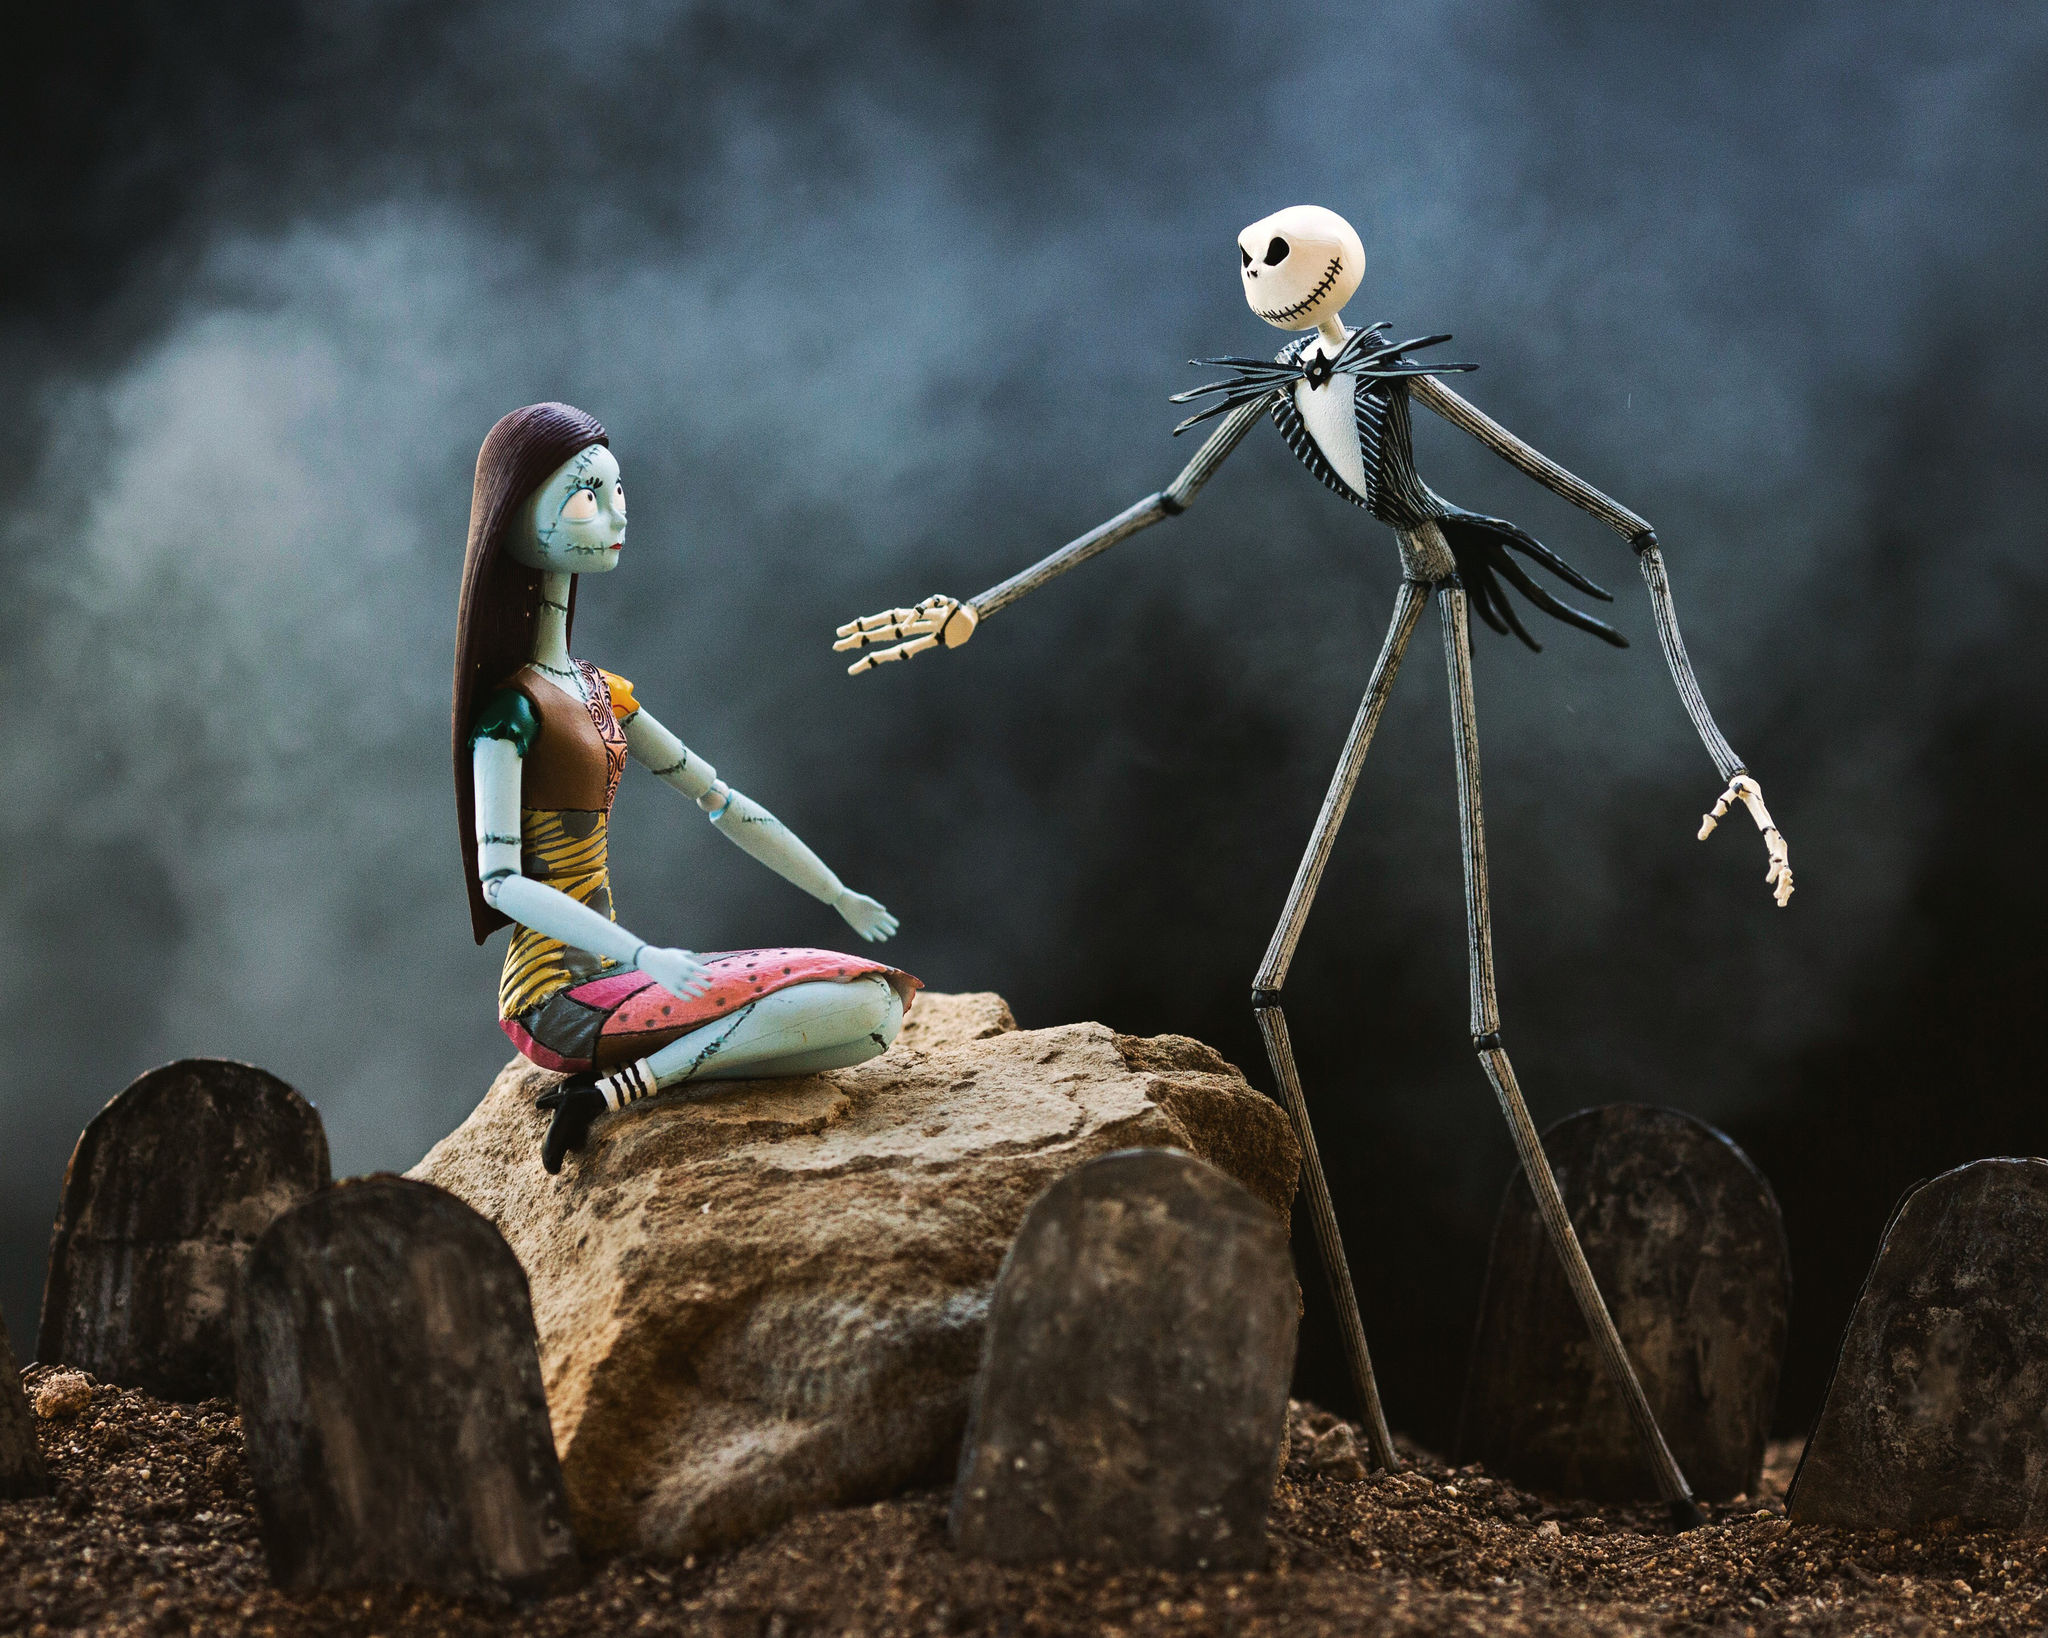 Mitchel Wu Toy Photography Behind the Scenes: Nightmare Before Christmas